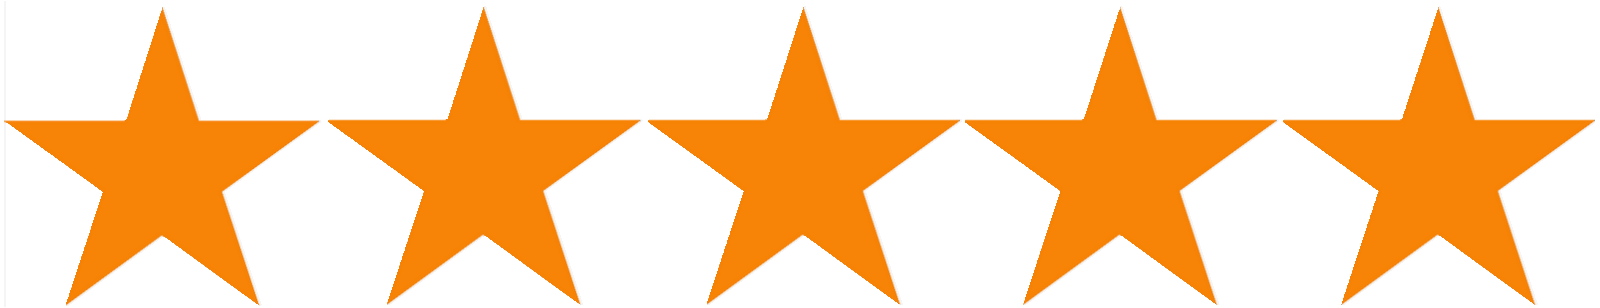 Reviewter Star